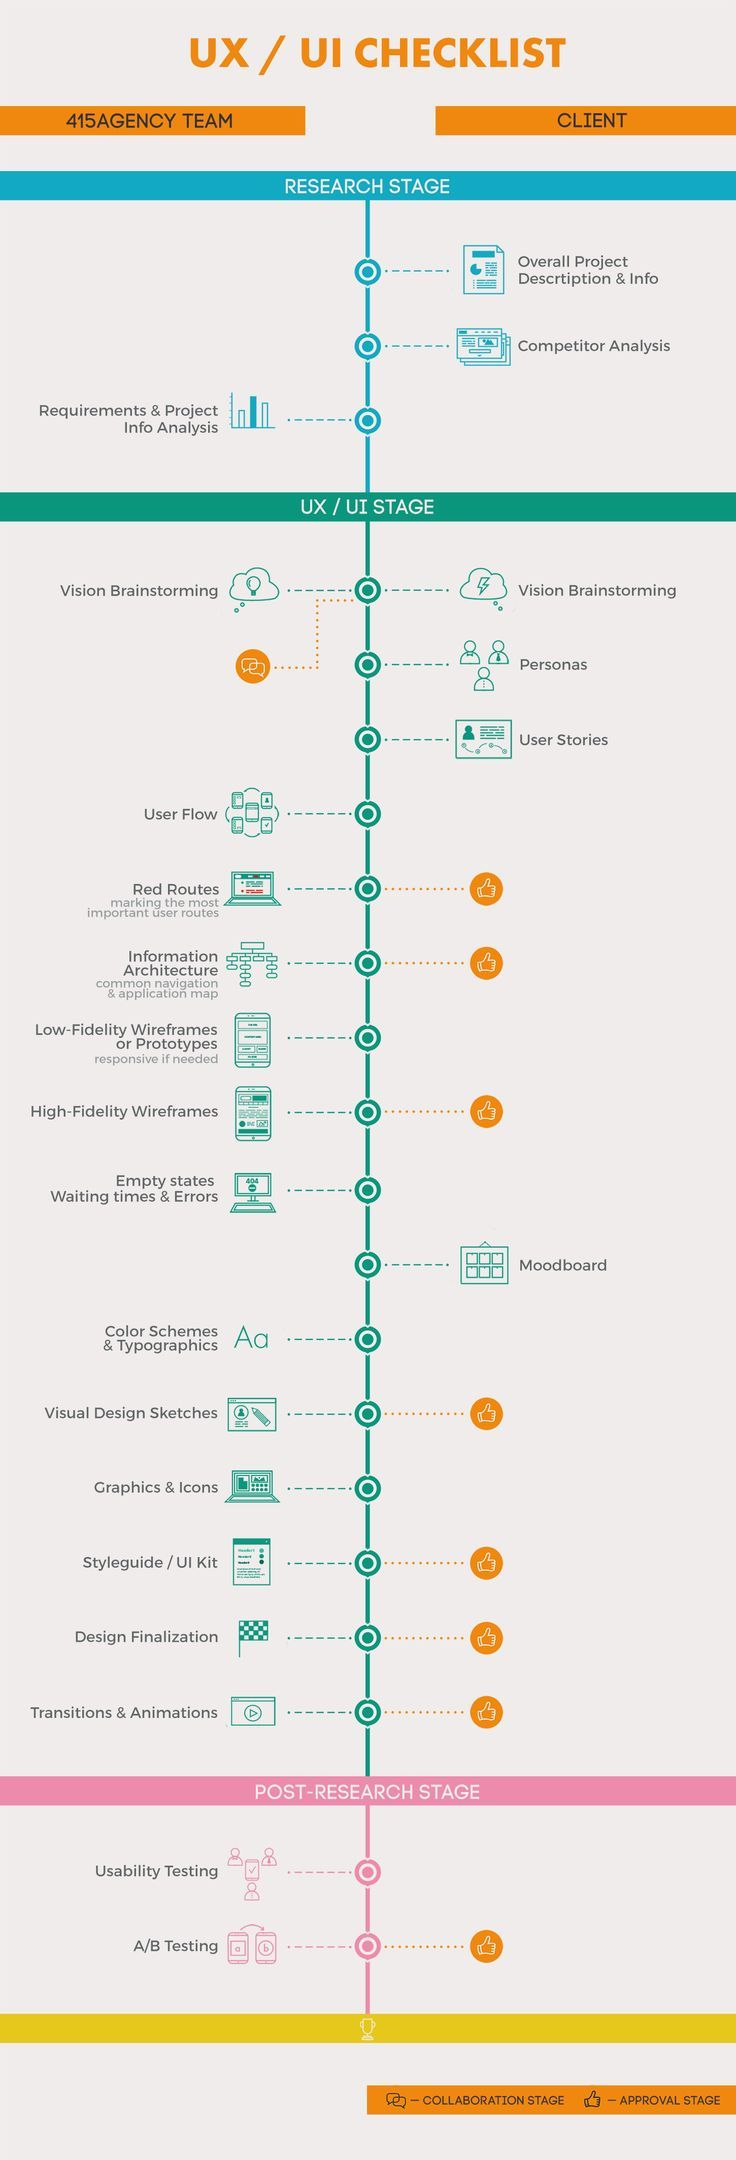 1156 best User Journey images on Pinterest | Customer experience ...